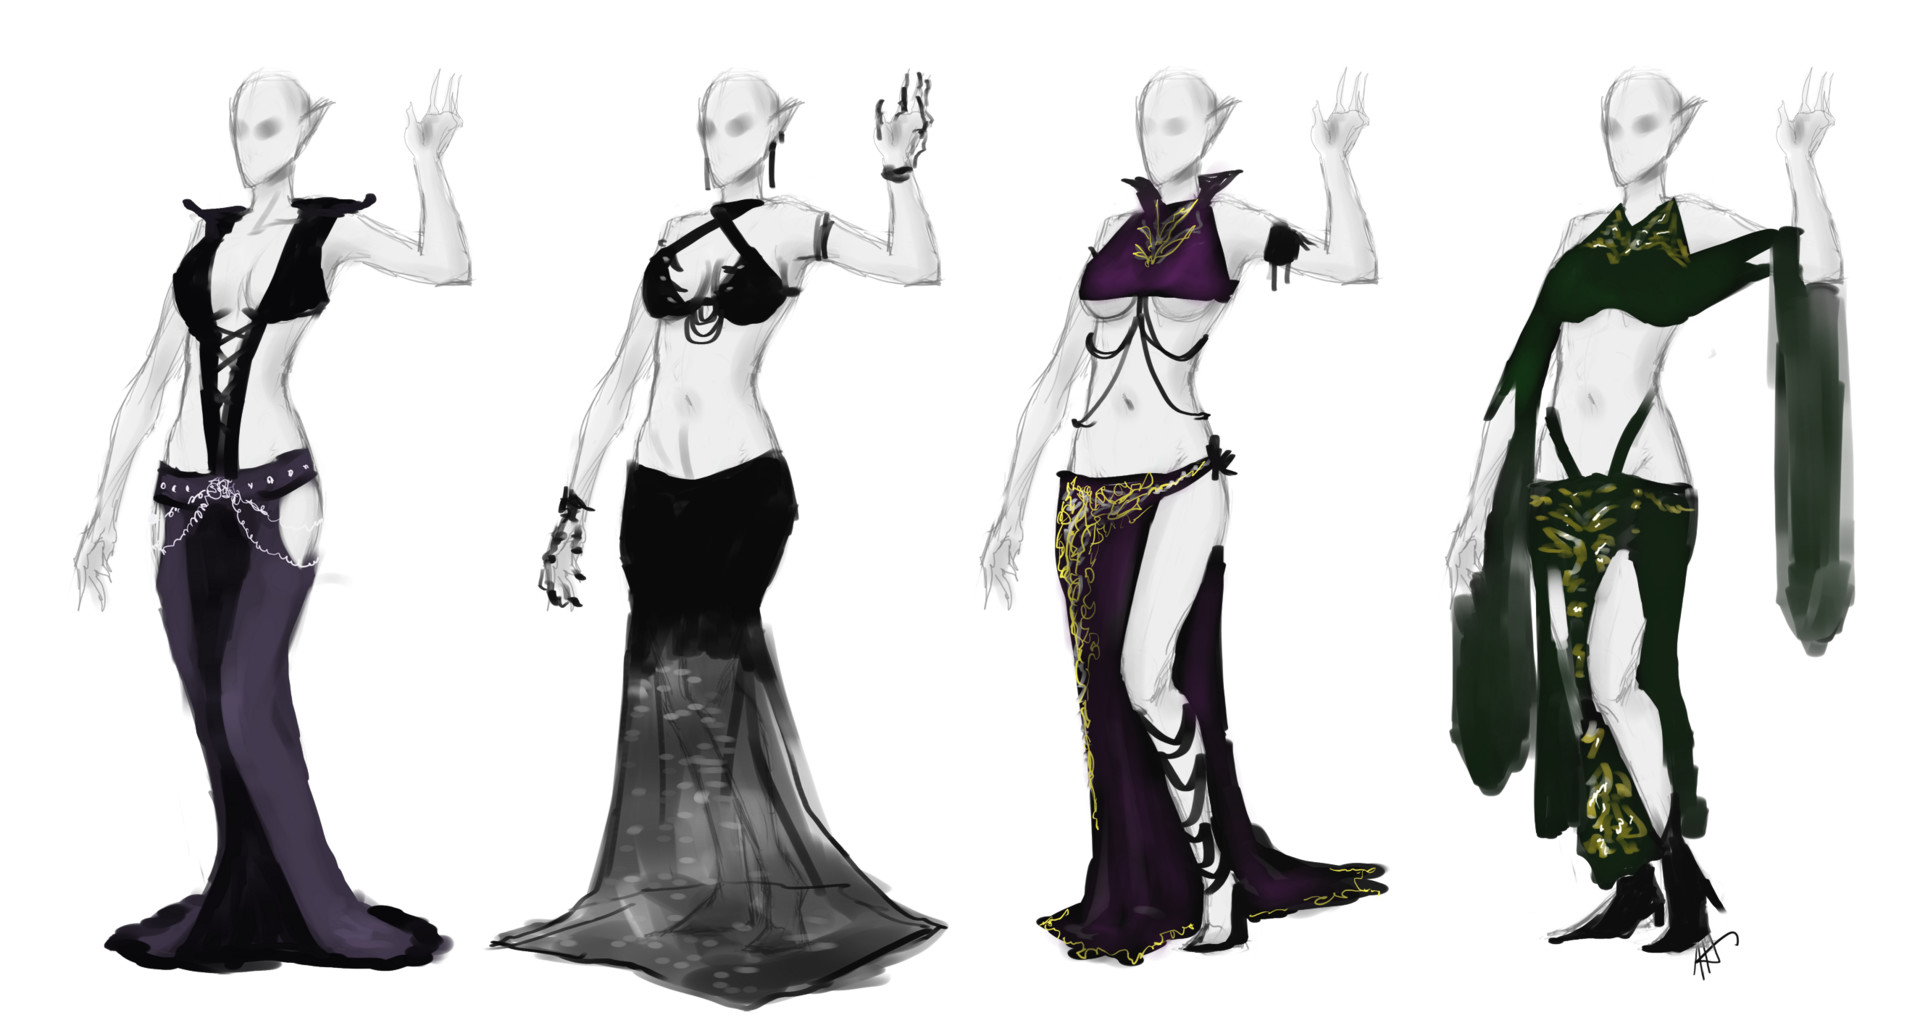 more clothing design